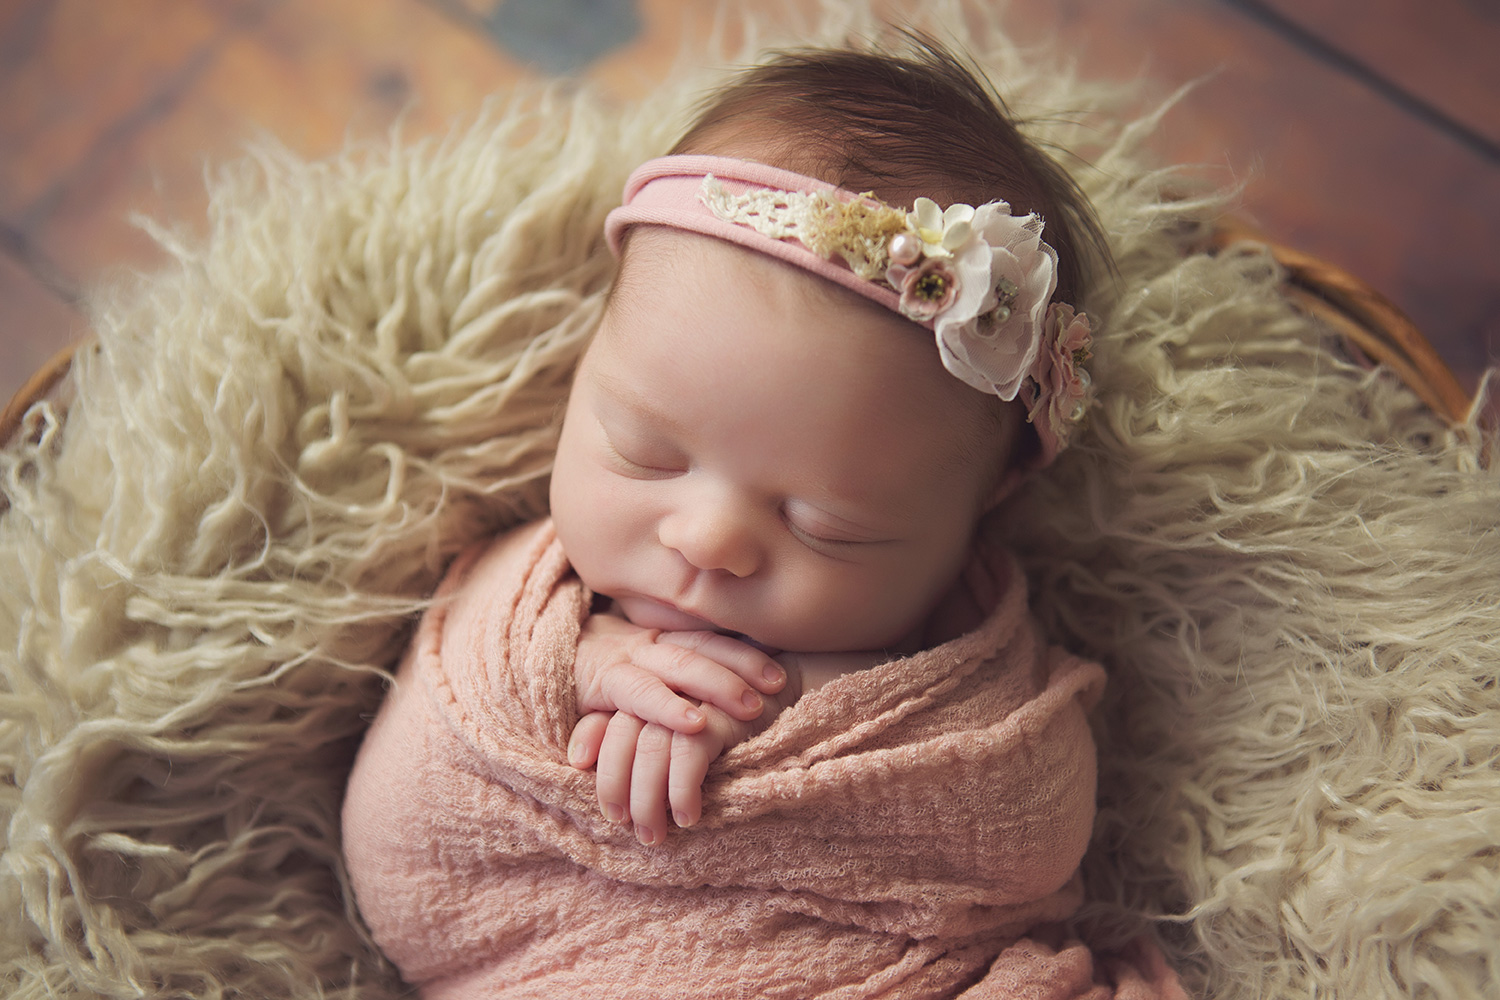 Newborn baby girl in a pink blanket